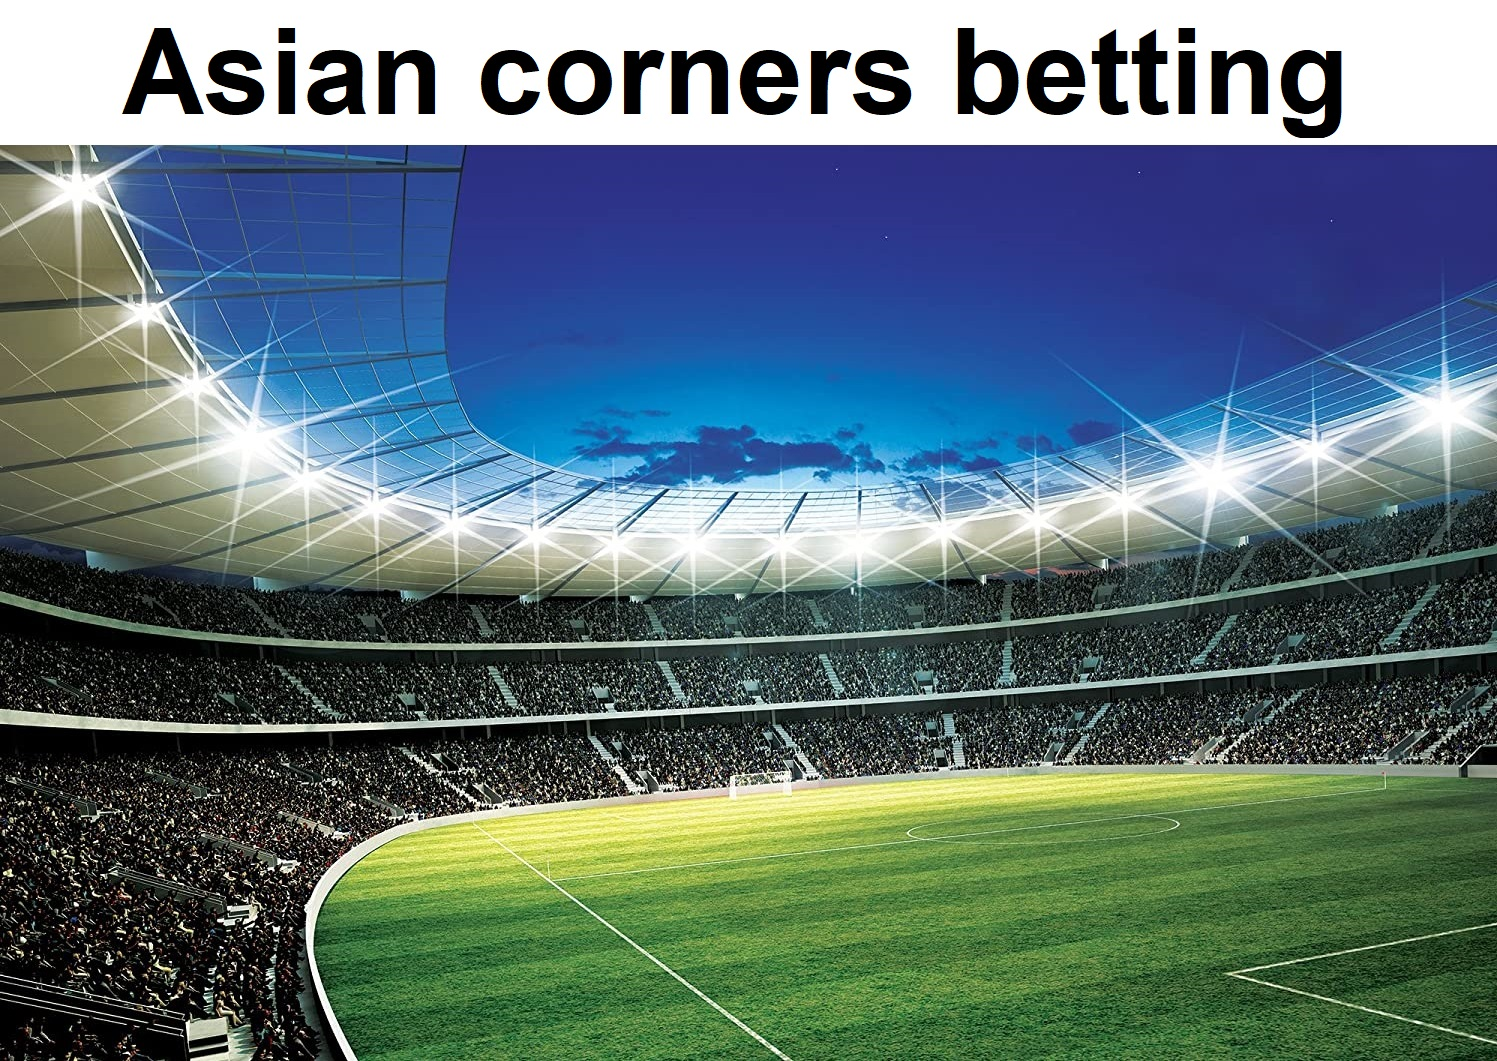 How to bet on Asian corners